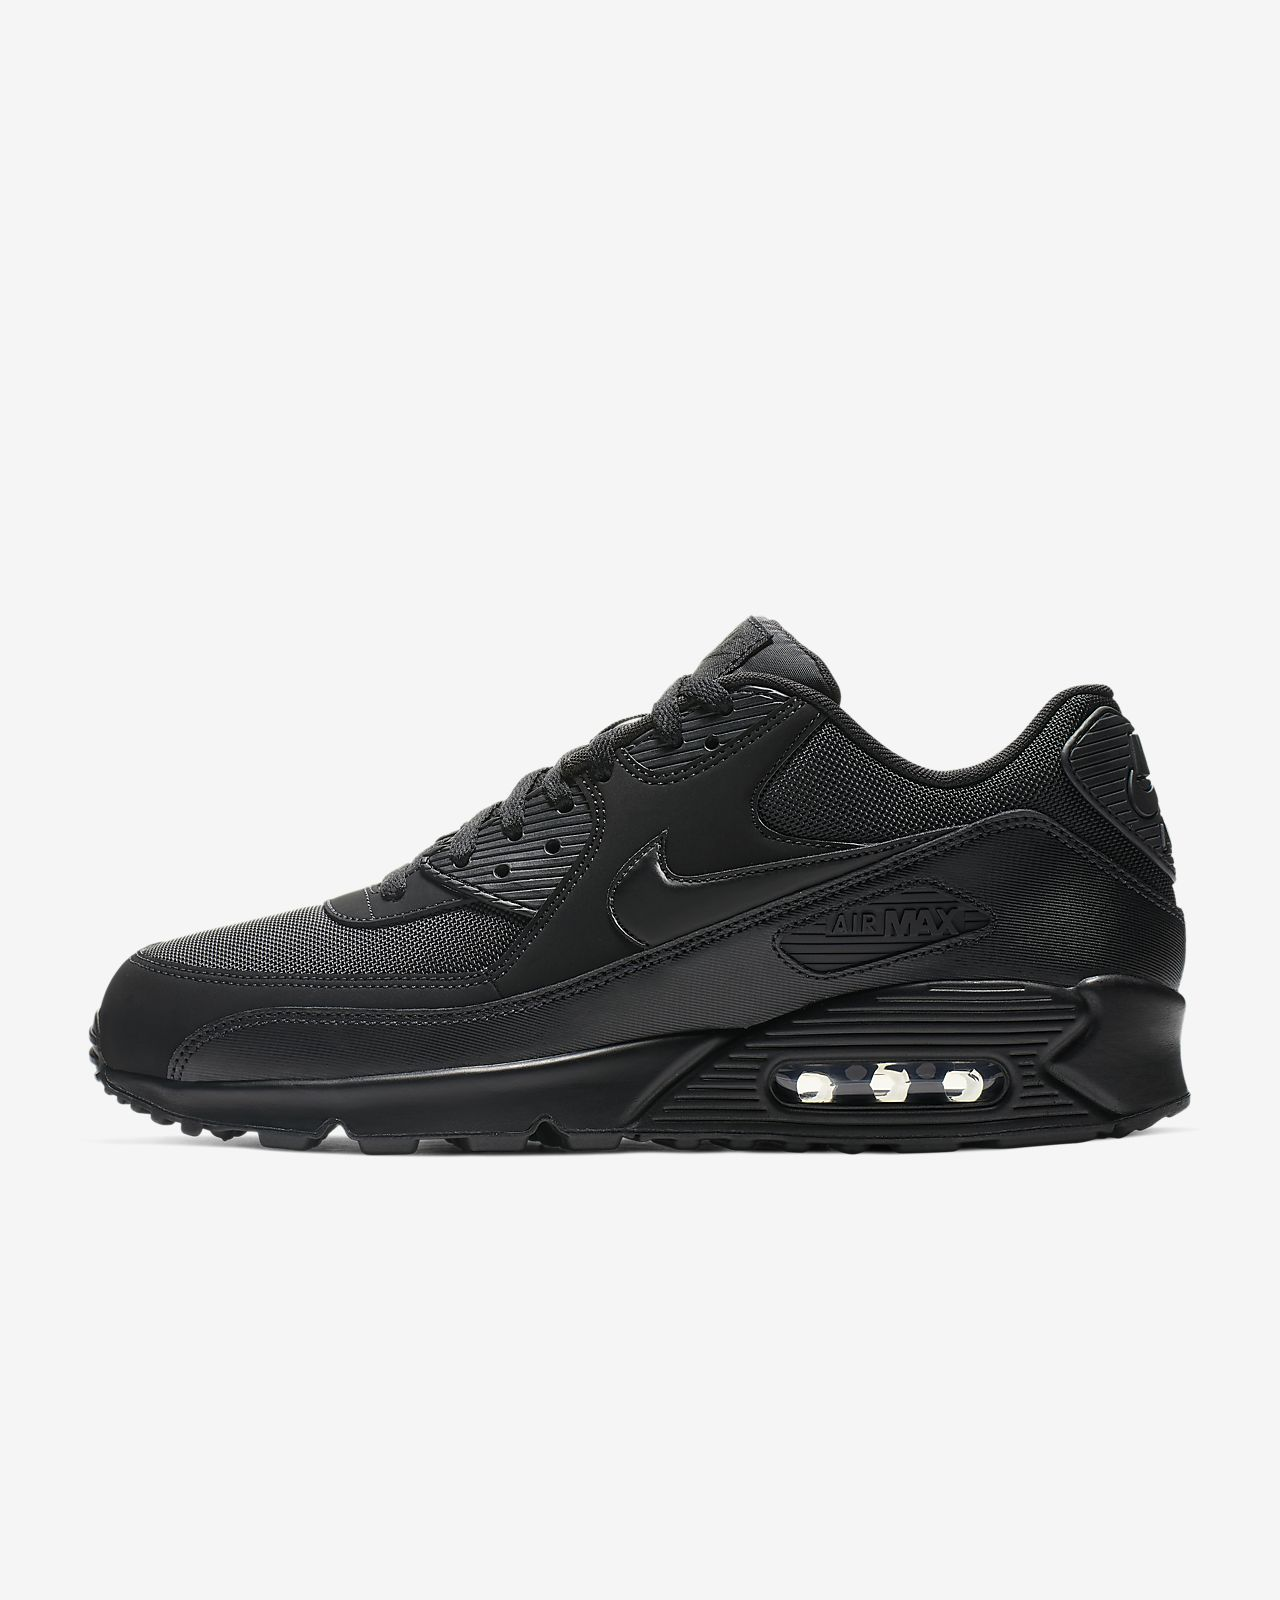 2nike max 90 hombres